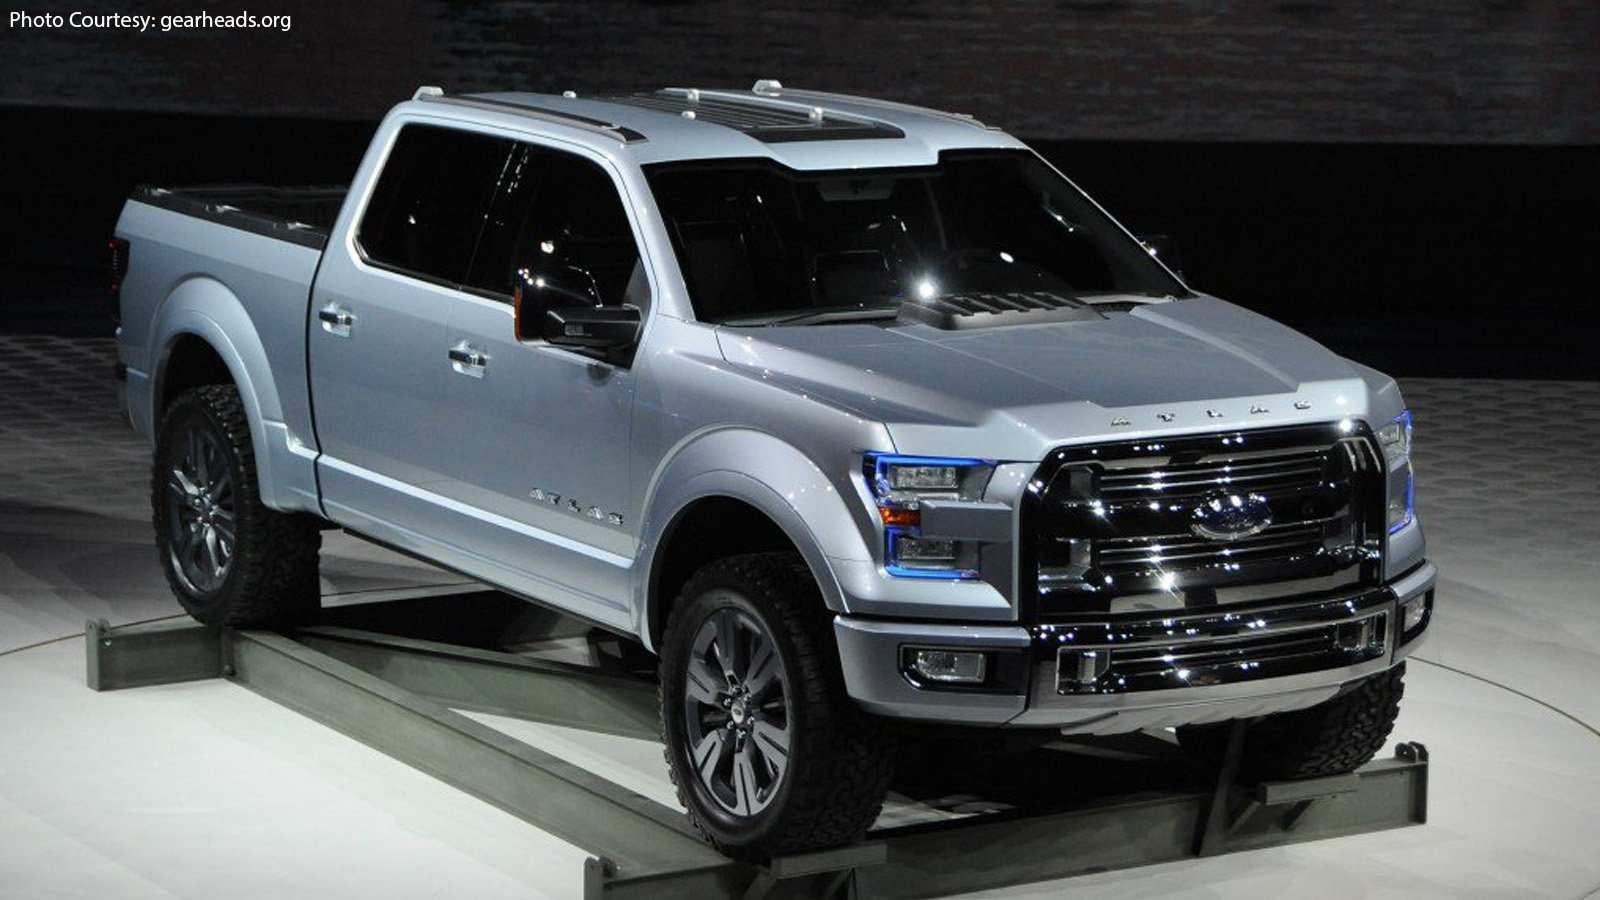 67 All New Ford Lariat 2020 Release Date And Concept